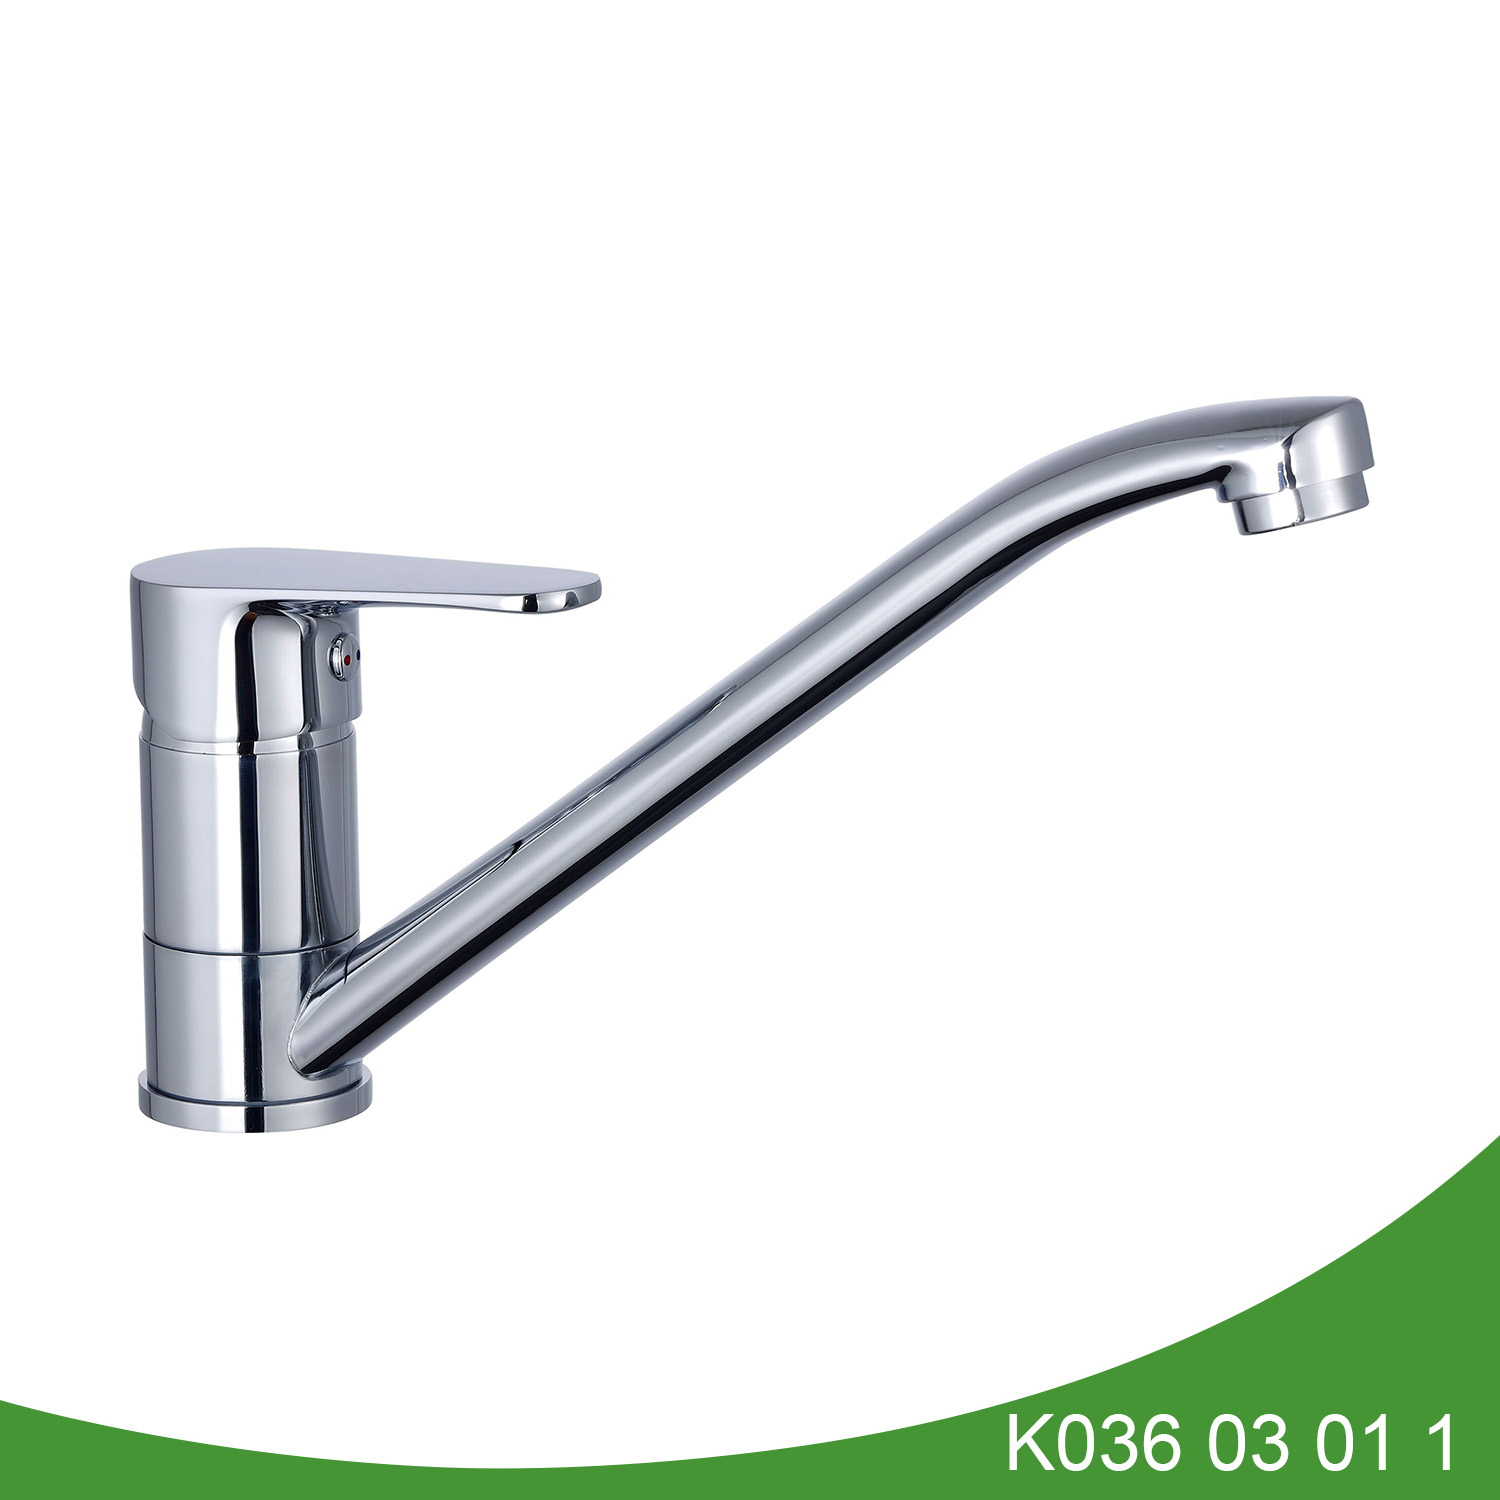 Short type single handle kitchen tap K036 03 01 1